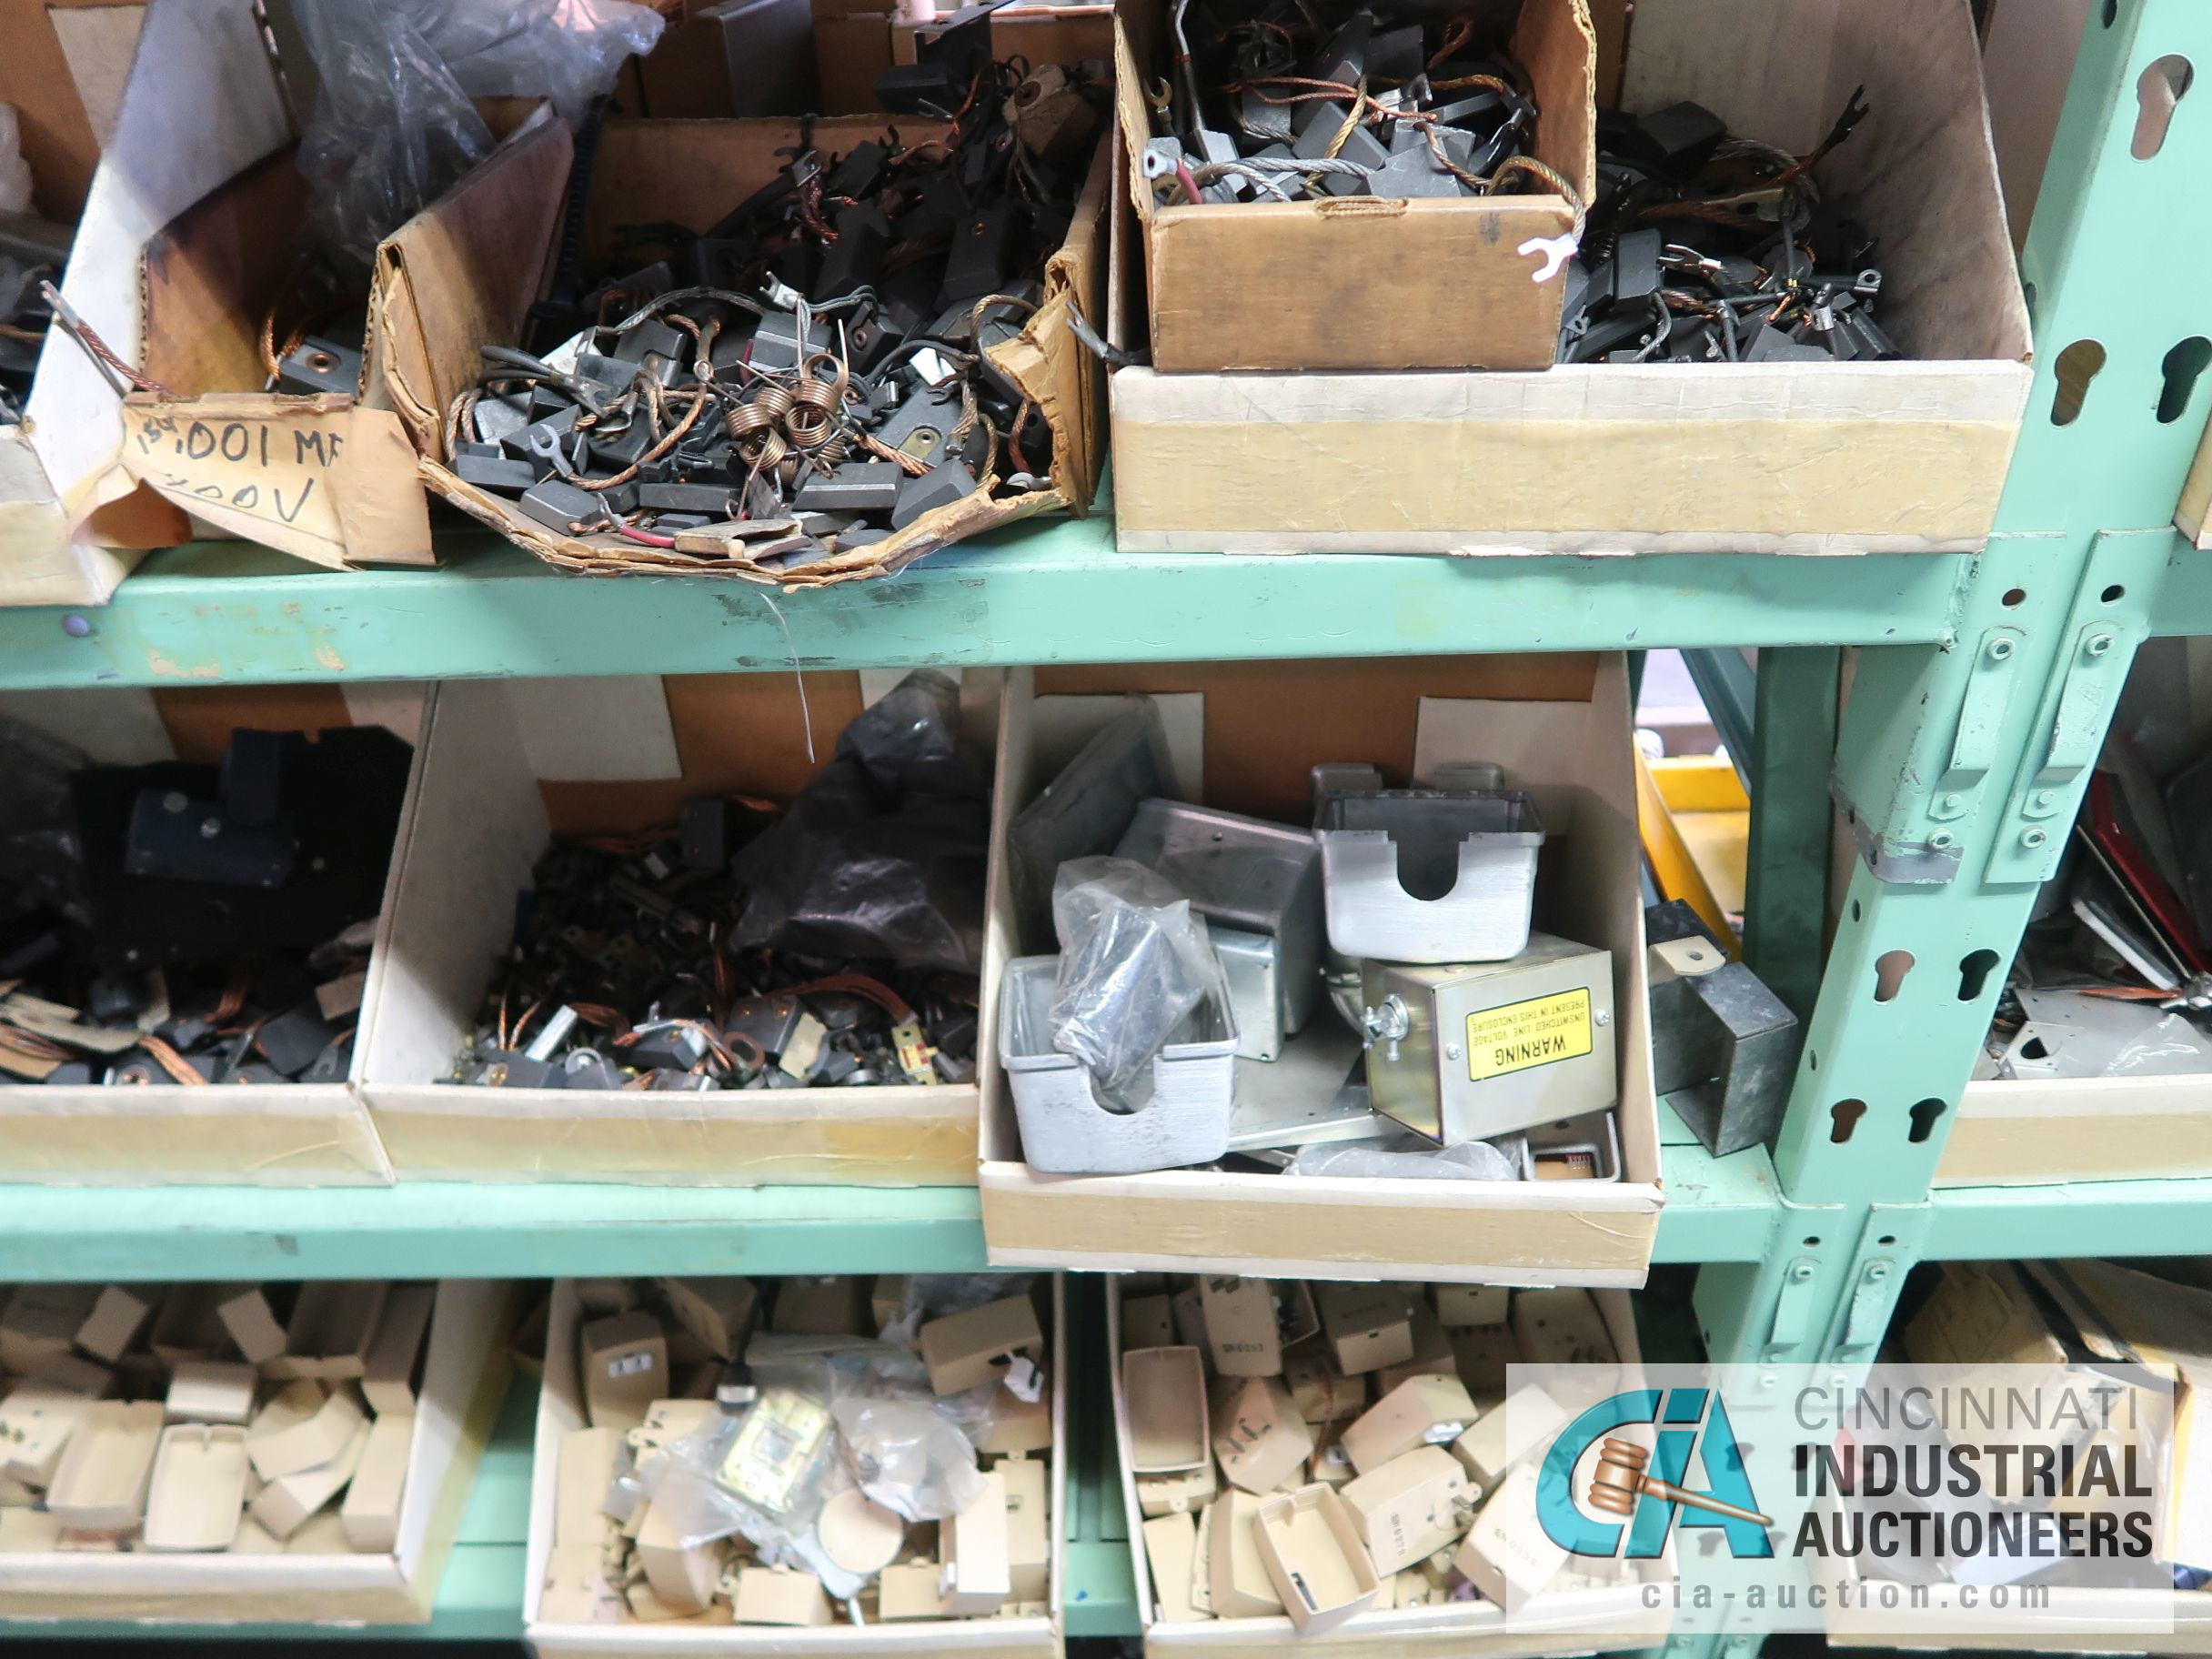 CONTENTS OF (6) RACKS INCLUDING MISCELLANEOUS AUTOMOTIVE PARTS, BREAKS, ROTORS, GASKETS, MOUNTING - Image 25 of 38